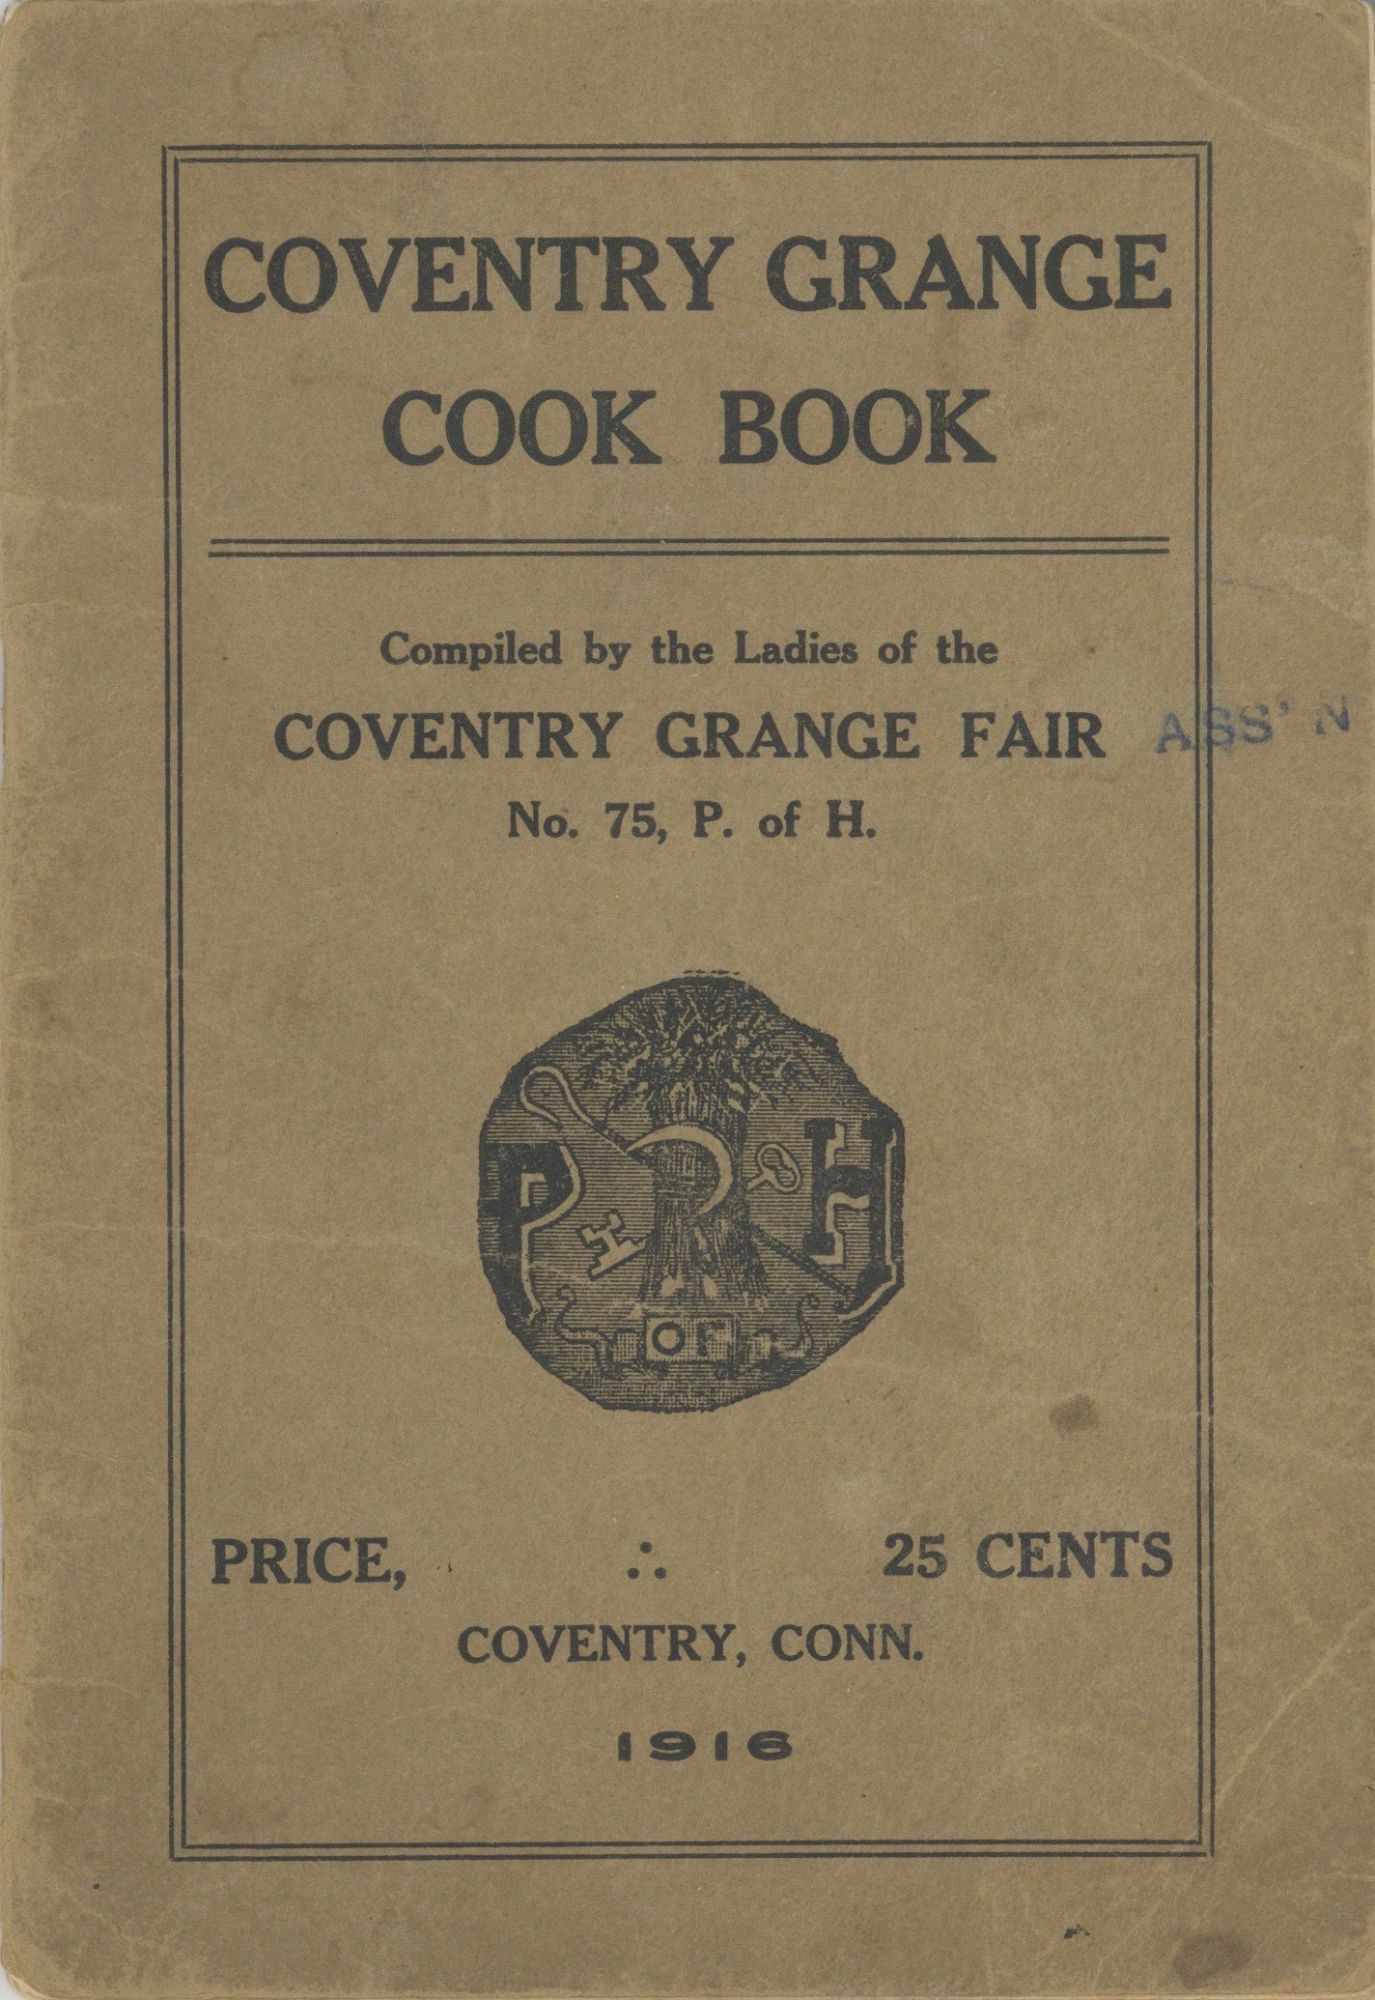 Coventry Grange Cook Book. Compiled by the Ladies of Coventry Grange Fair, No. 75, P. of H. No. 75 Conventry Grange, Ladies of the Grange, Conn Coventry.